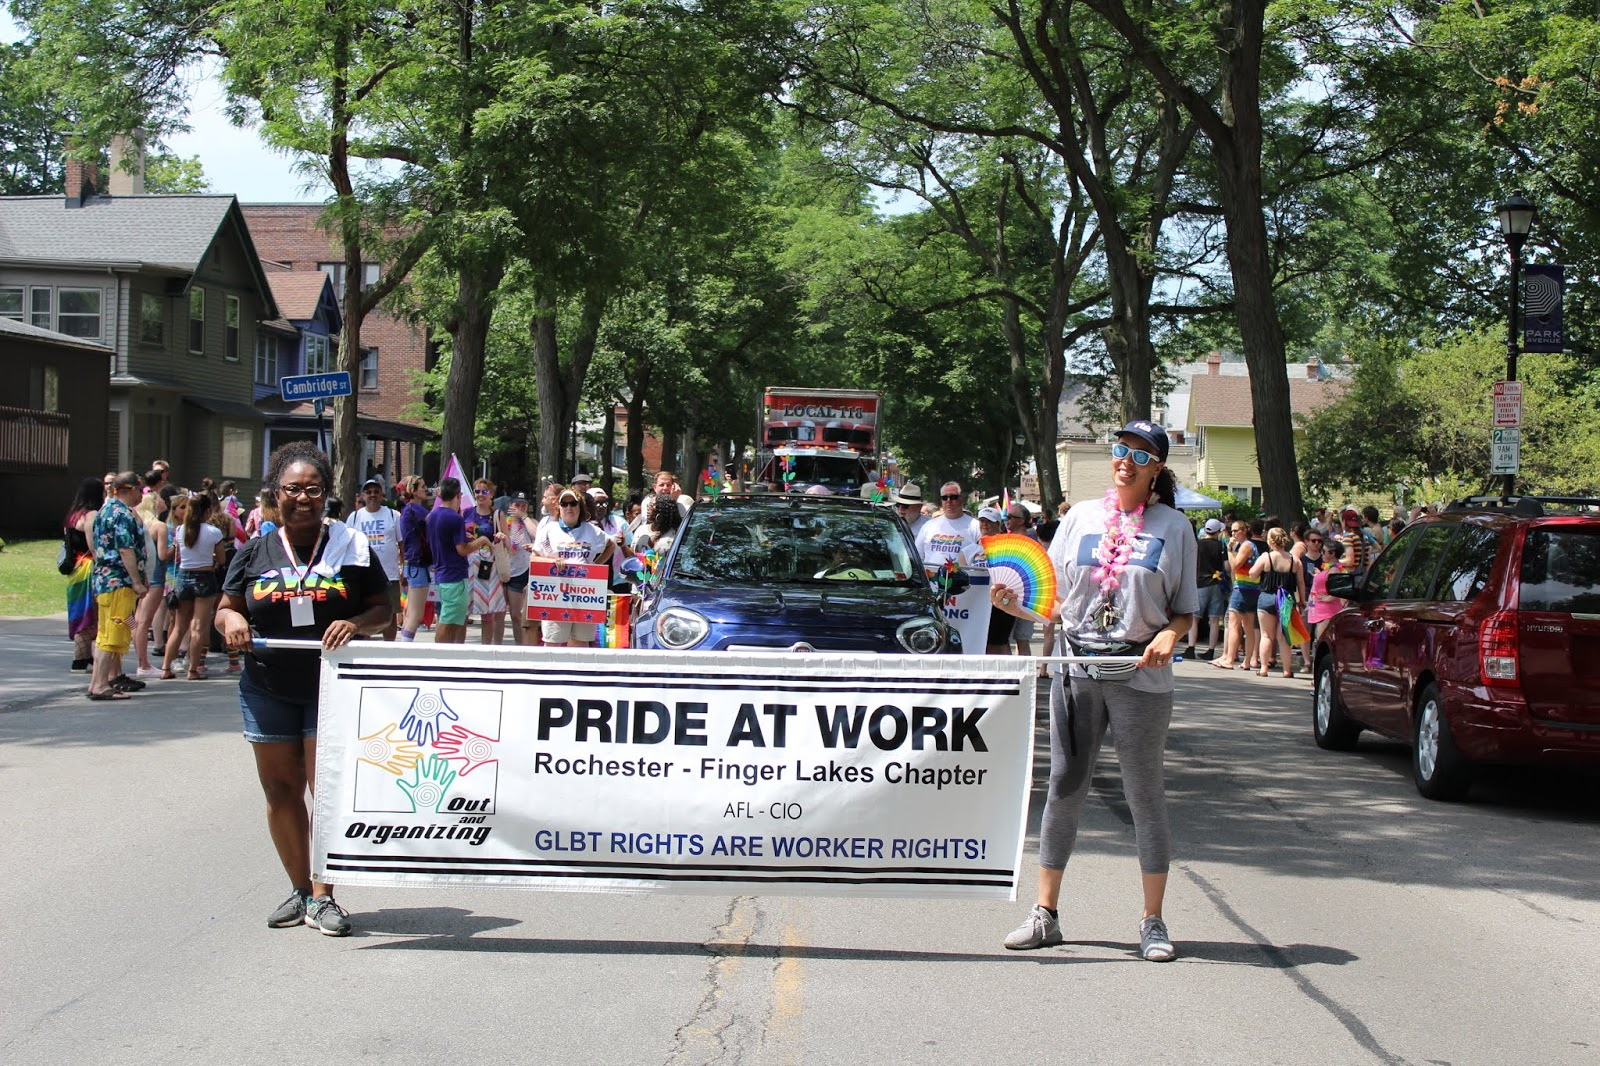 Pride at Work AFL-CIO Rochester Finger Lakes Chapter